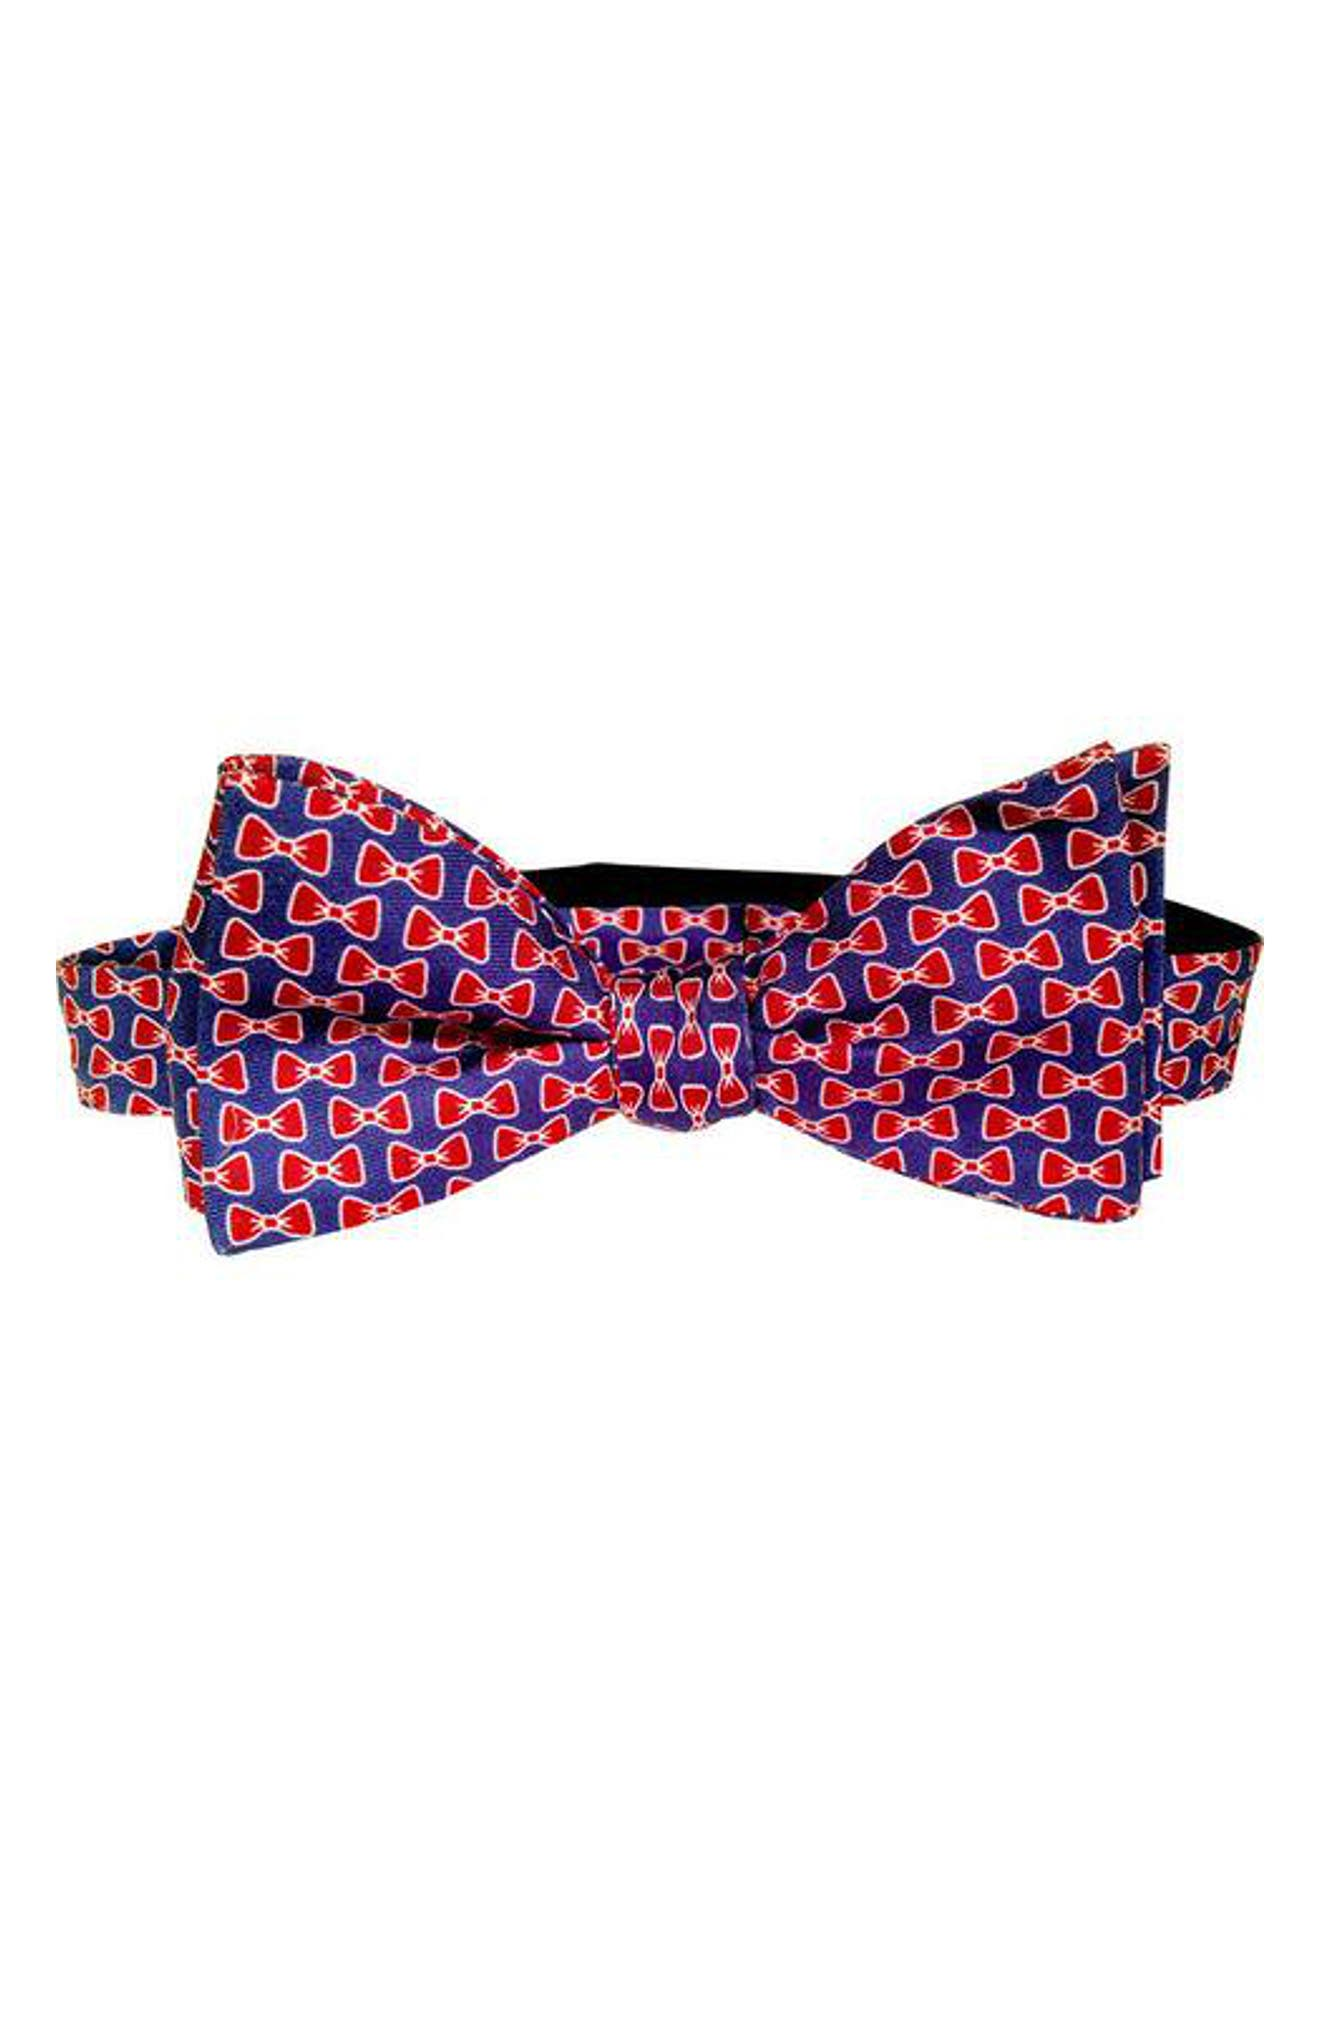 All Tied Up Silk Bow Tie,                             Main thumbnail 1, color,                             410